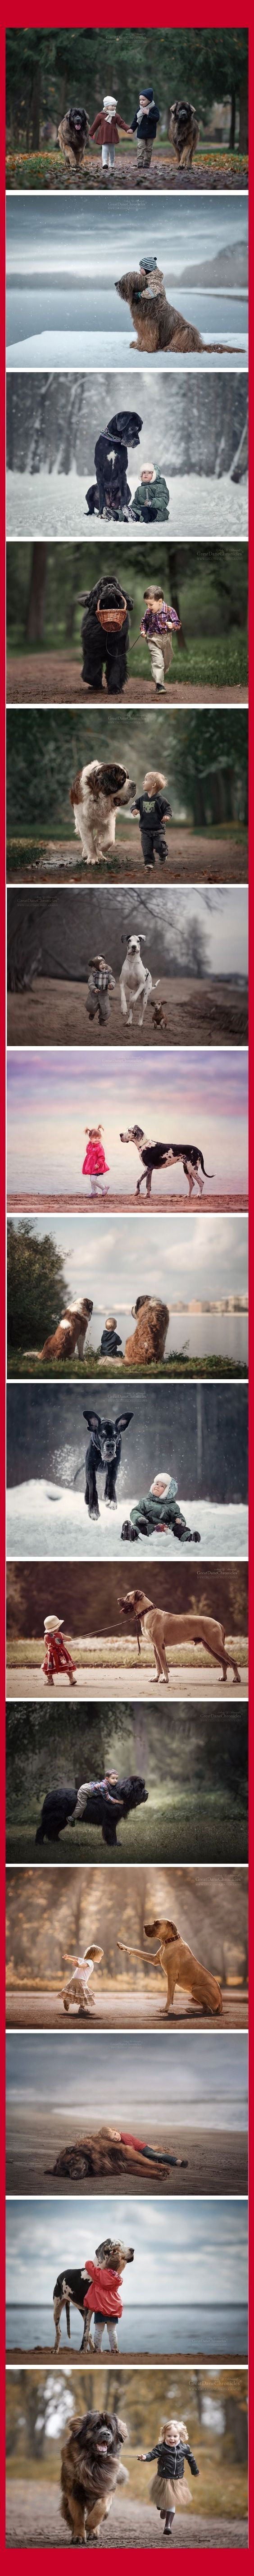 LITTLE KIDS + BIG DOGS photographer Andy Seliverstoff by​ James Gould-Bourn via: www.boredpanda.com/little-kids-big-dogs-photography-andy-seliverstoff/?cexp_id=1124